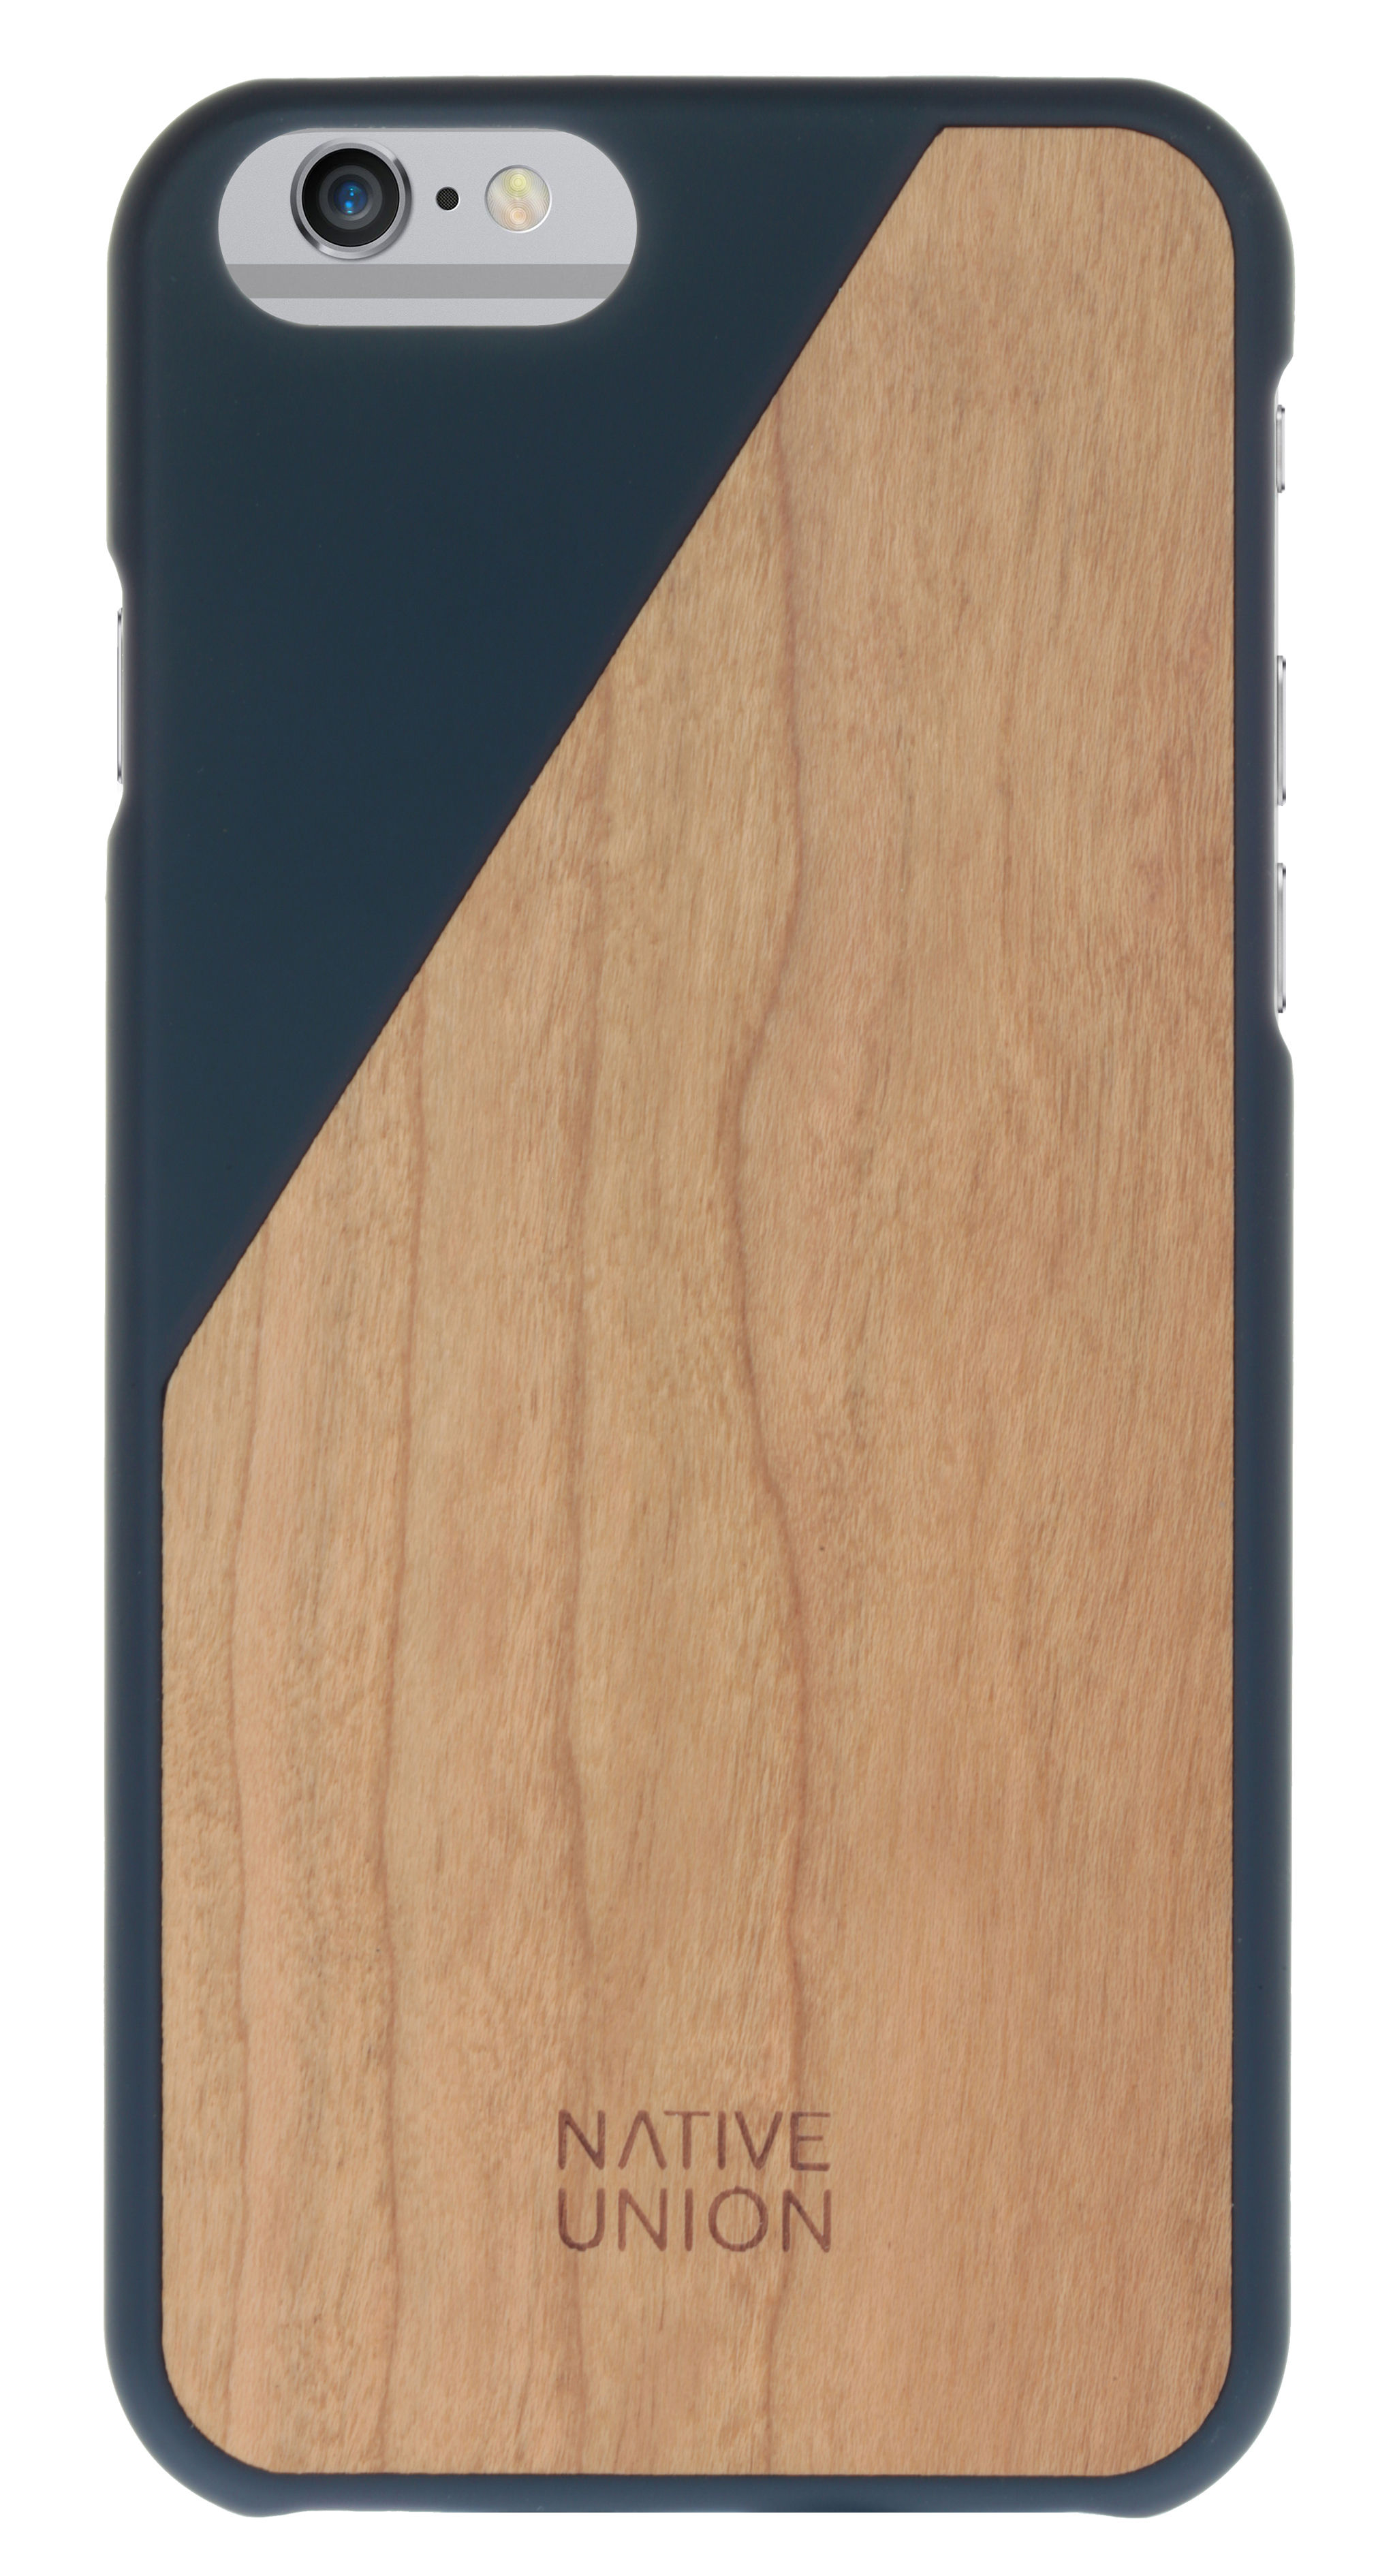 coque iphone 6 clic wood bois massif bleu cerisier. Black Bedroom Furniture Sets. Home Design Ideas